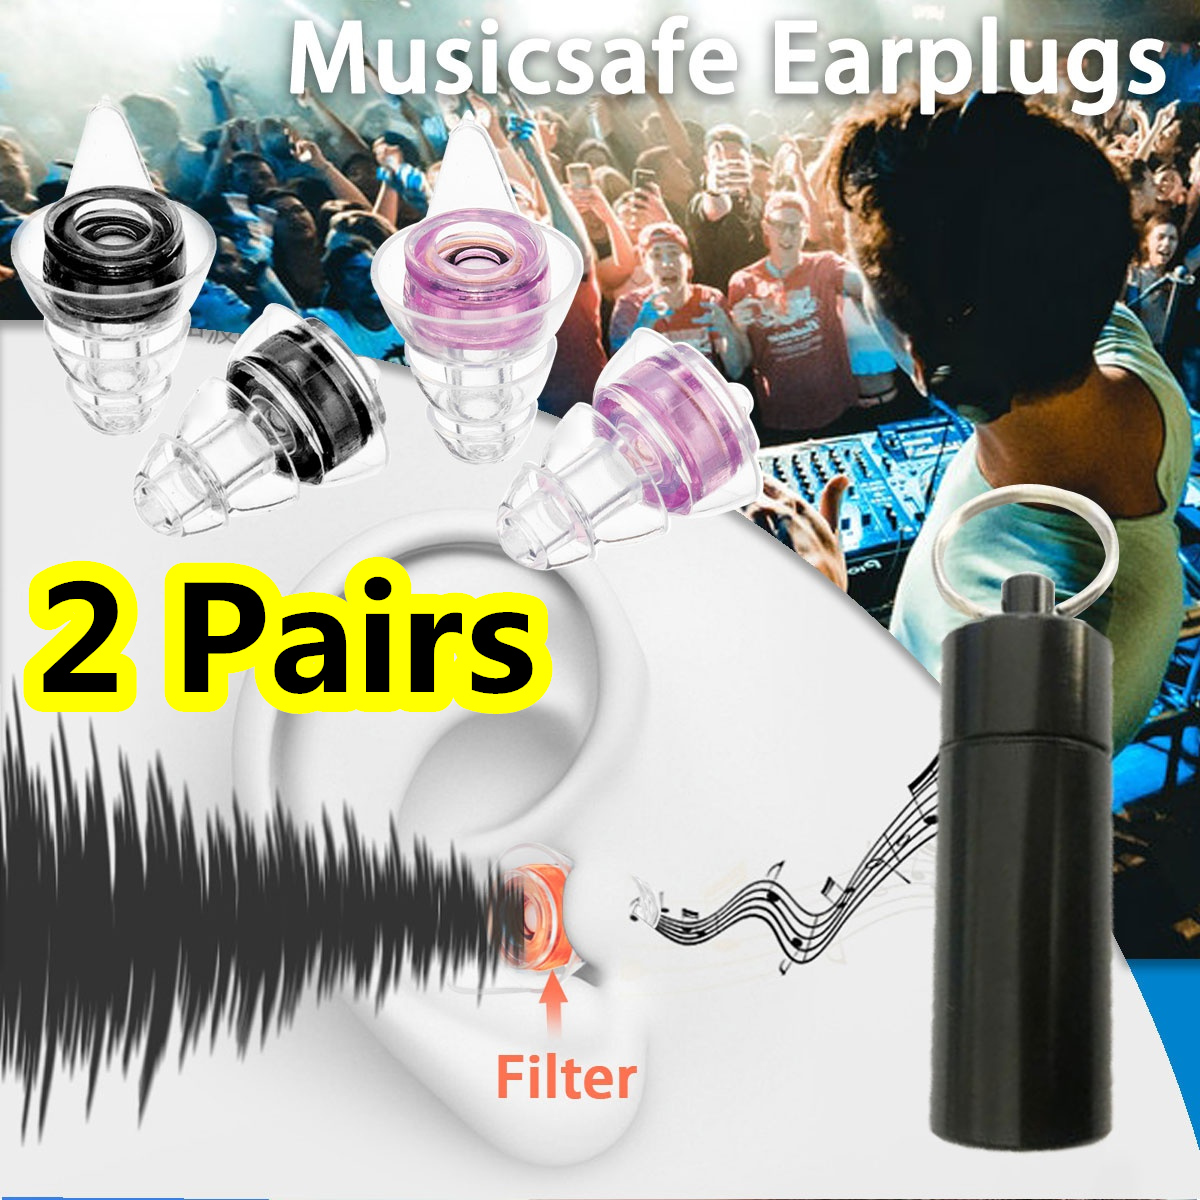 2Pairs Noise Cancelling Hearing Protection Earplugs Reusable Waterproof Silicone Ear plugs For Concerts Musician Motorcycles 1 pair ear plug silicone ear plugs anti noise earplugs for sleeping ear protector motorcycle drummer musician concerts earbuds